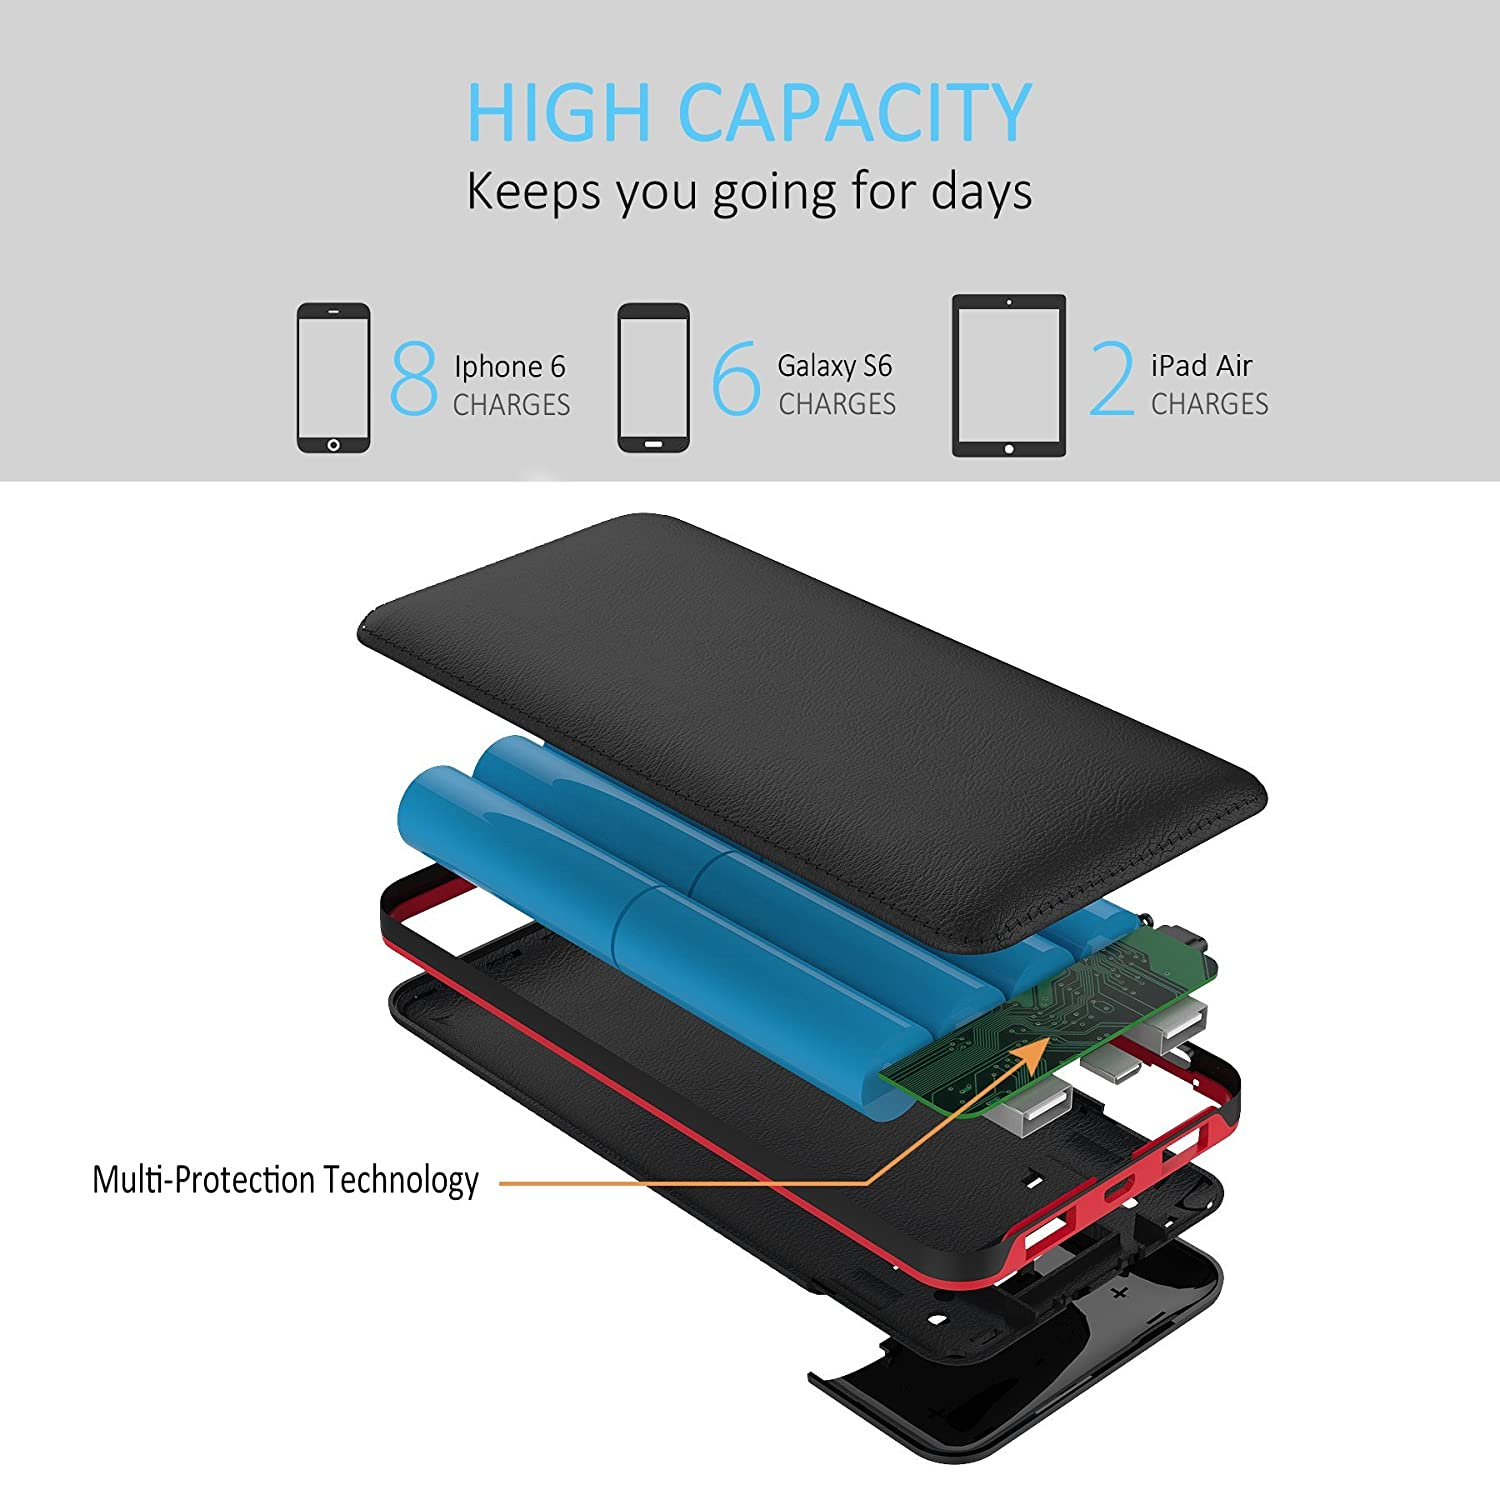 Power Bank da 24000 mAh struttura interna